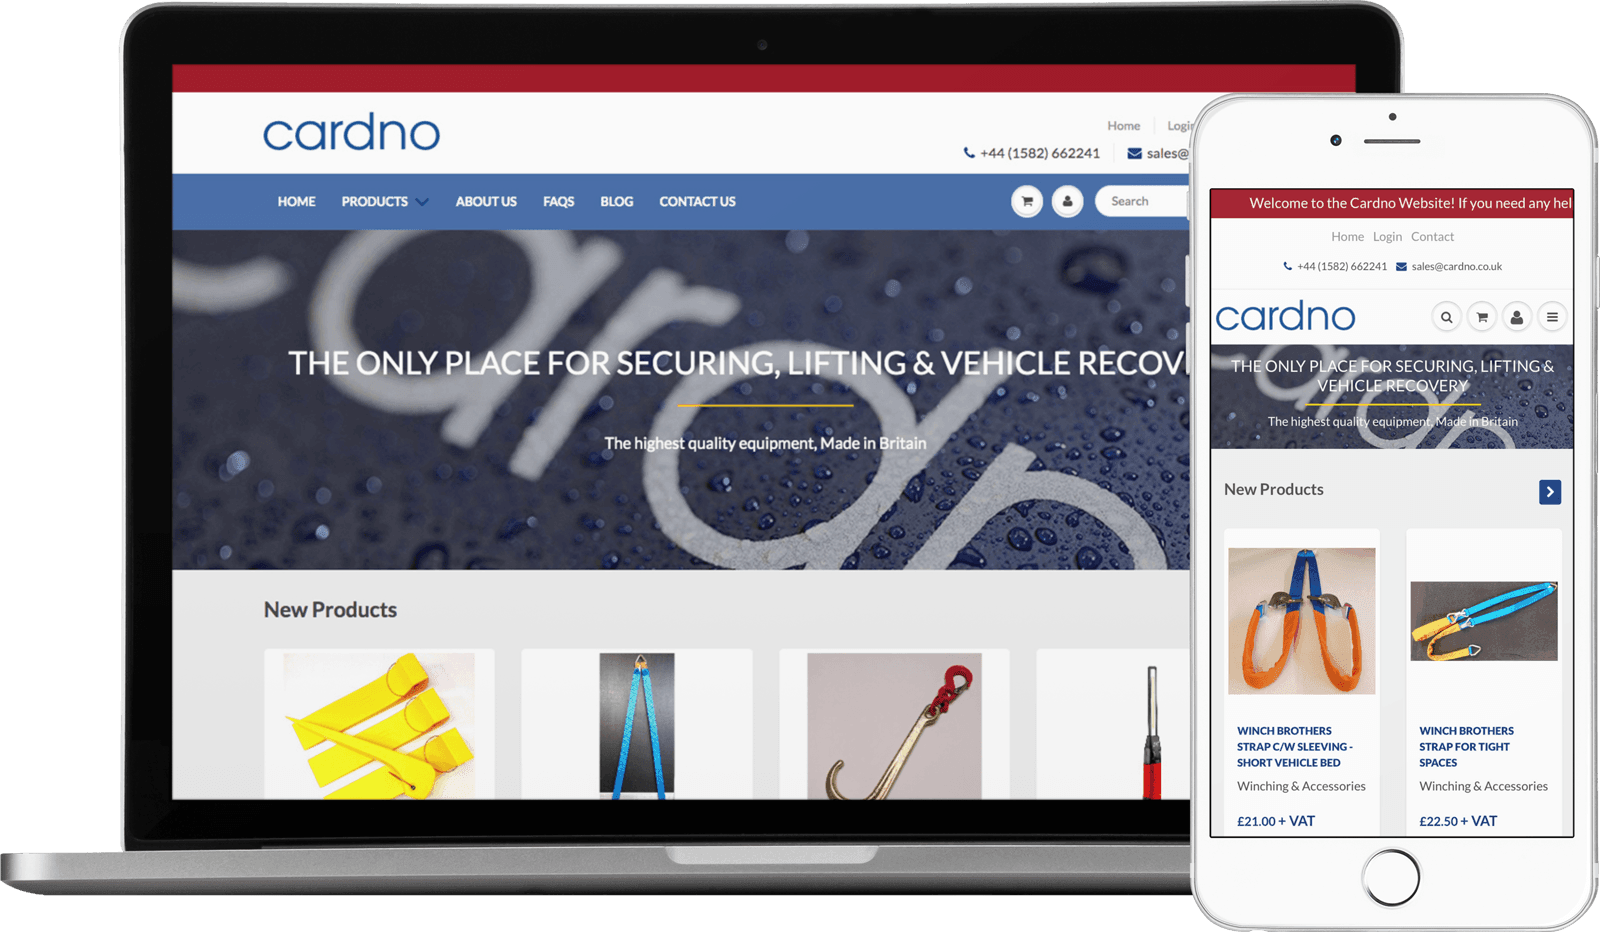 Macbook / iPhone view of the Cardno website